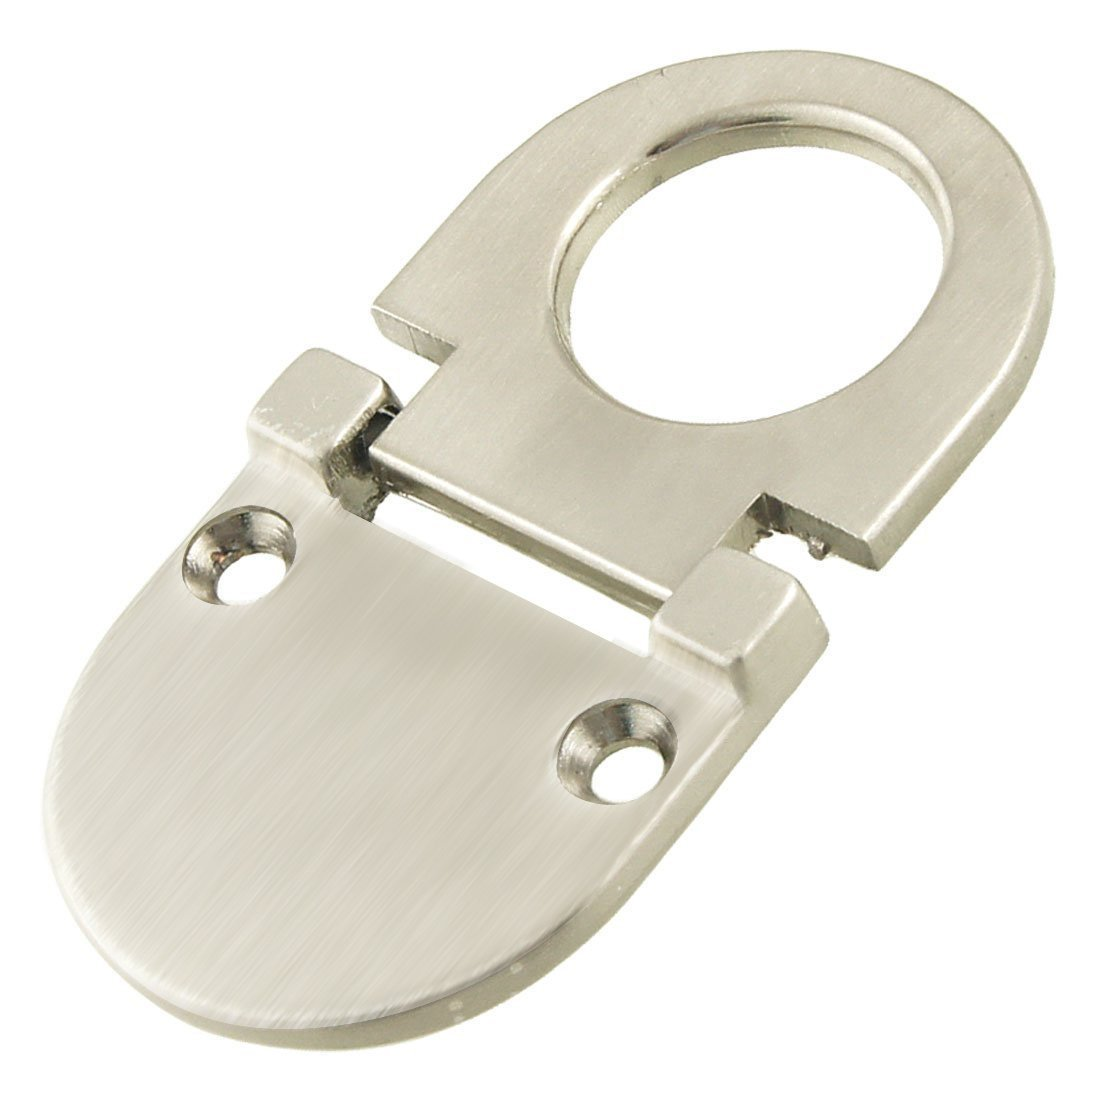 SODIAL(R) Cupboard Drawer Metal Flush Mount Pull Ring Handle Silver Tone